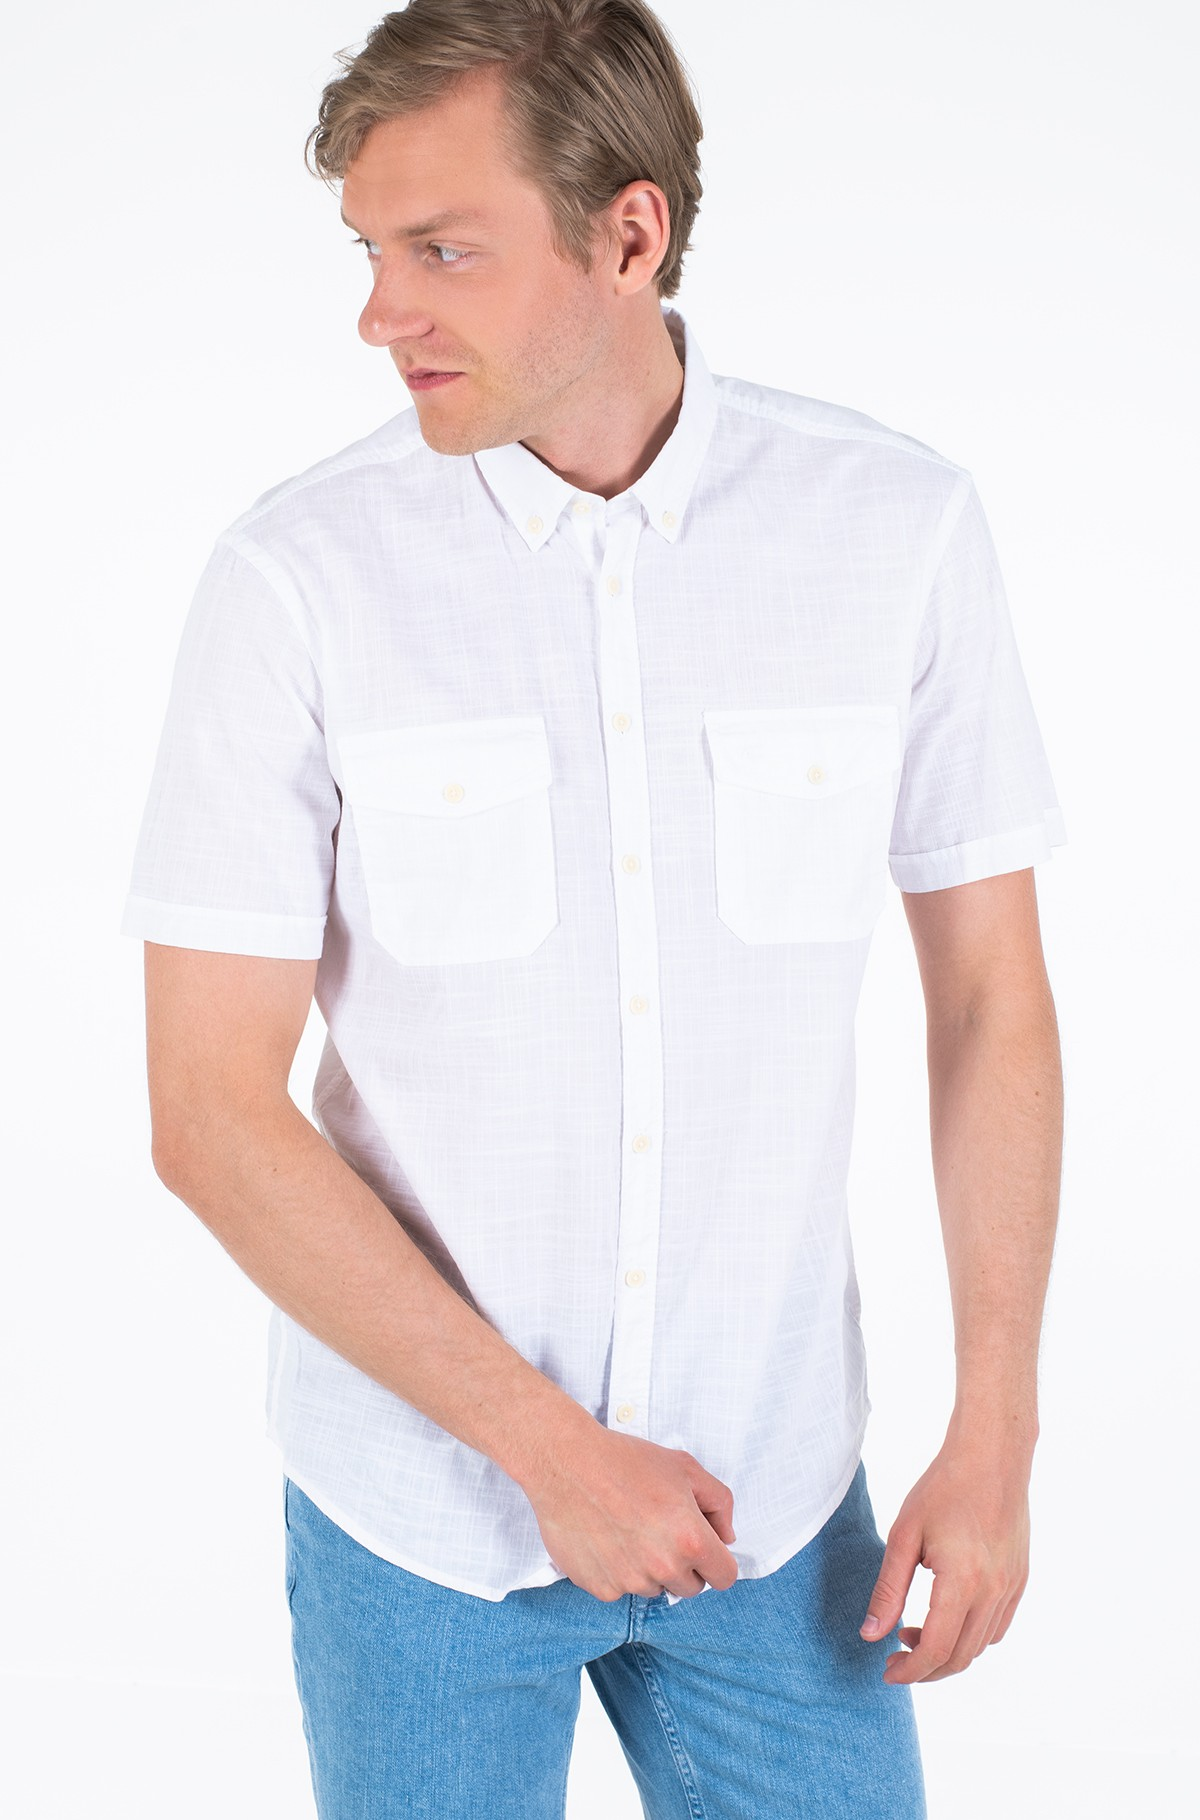 Short sleeve shirt 409220/3S31-full-1